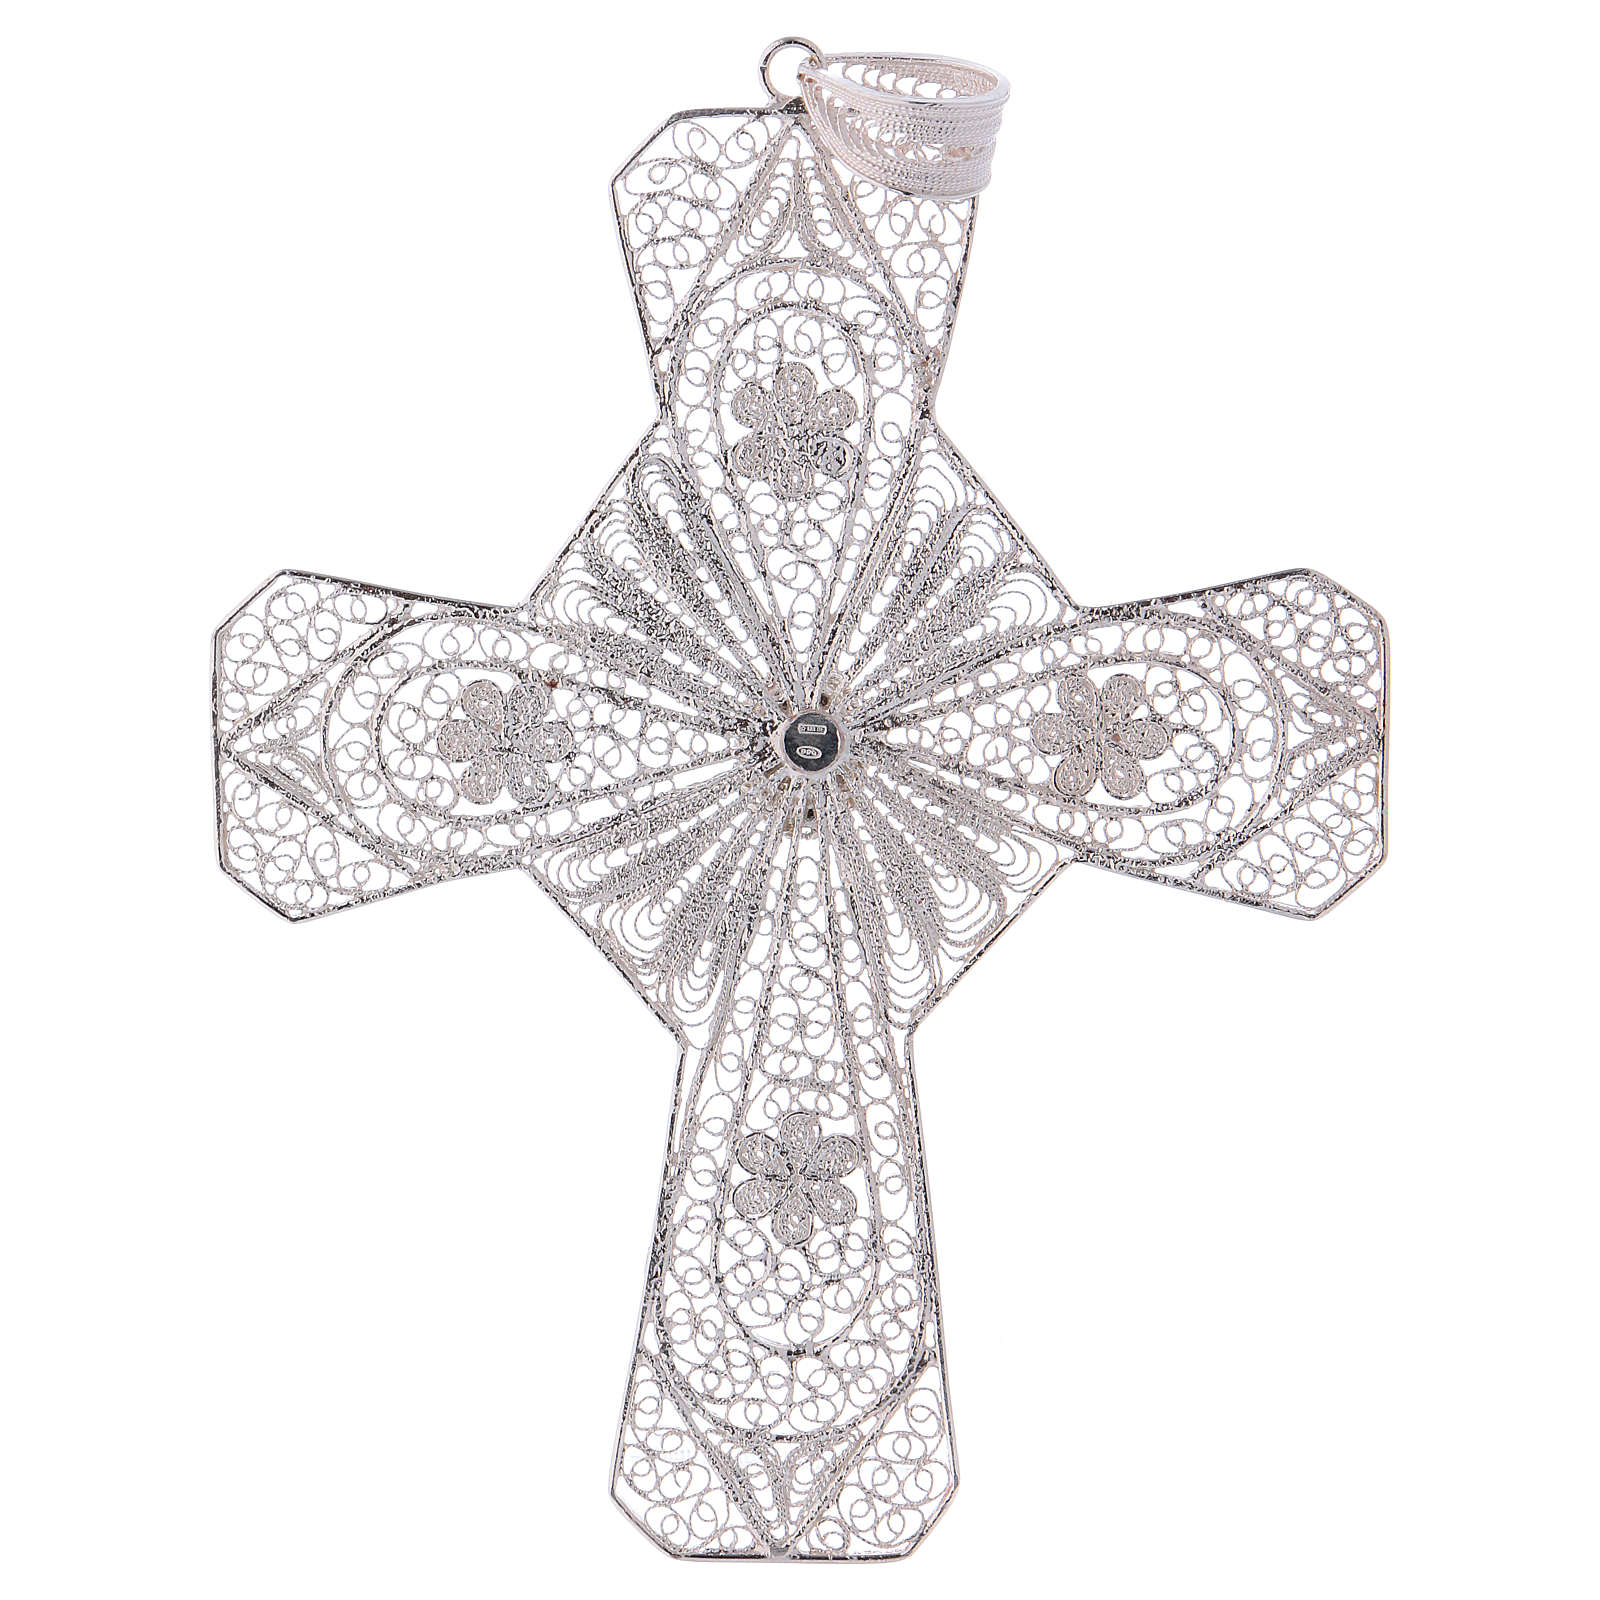 Pectoral Cross in silver 800 filigree with Turquoise stone 3